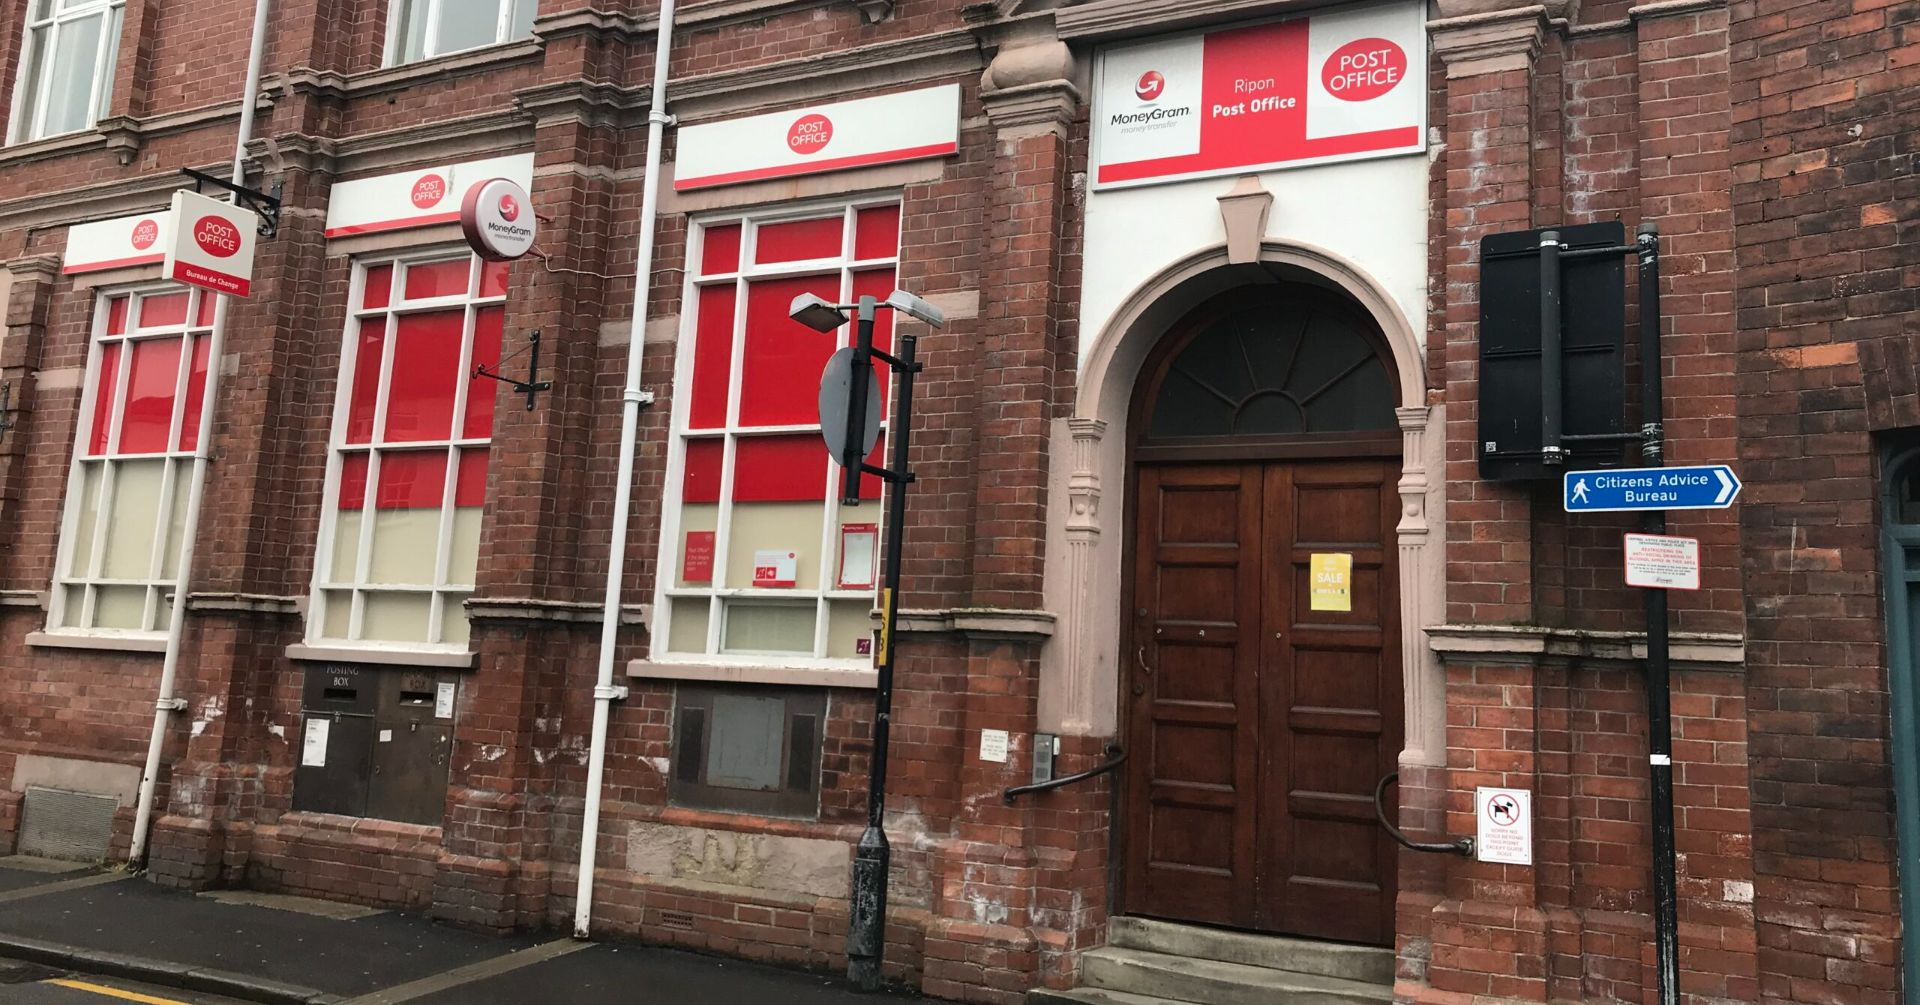 The former Ripon Post Office on Finkle Street has now closed